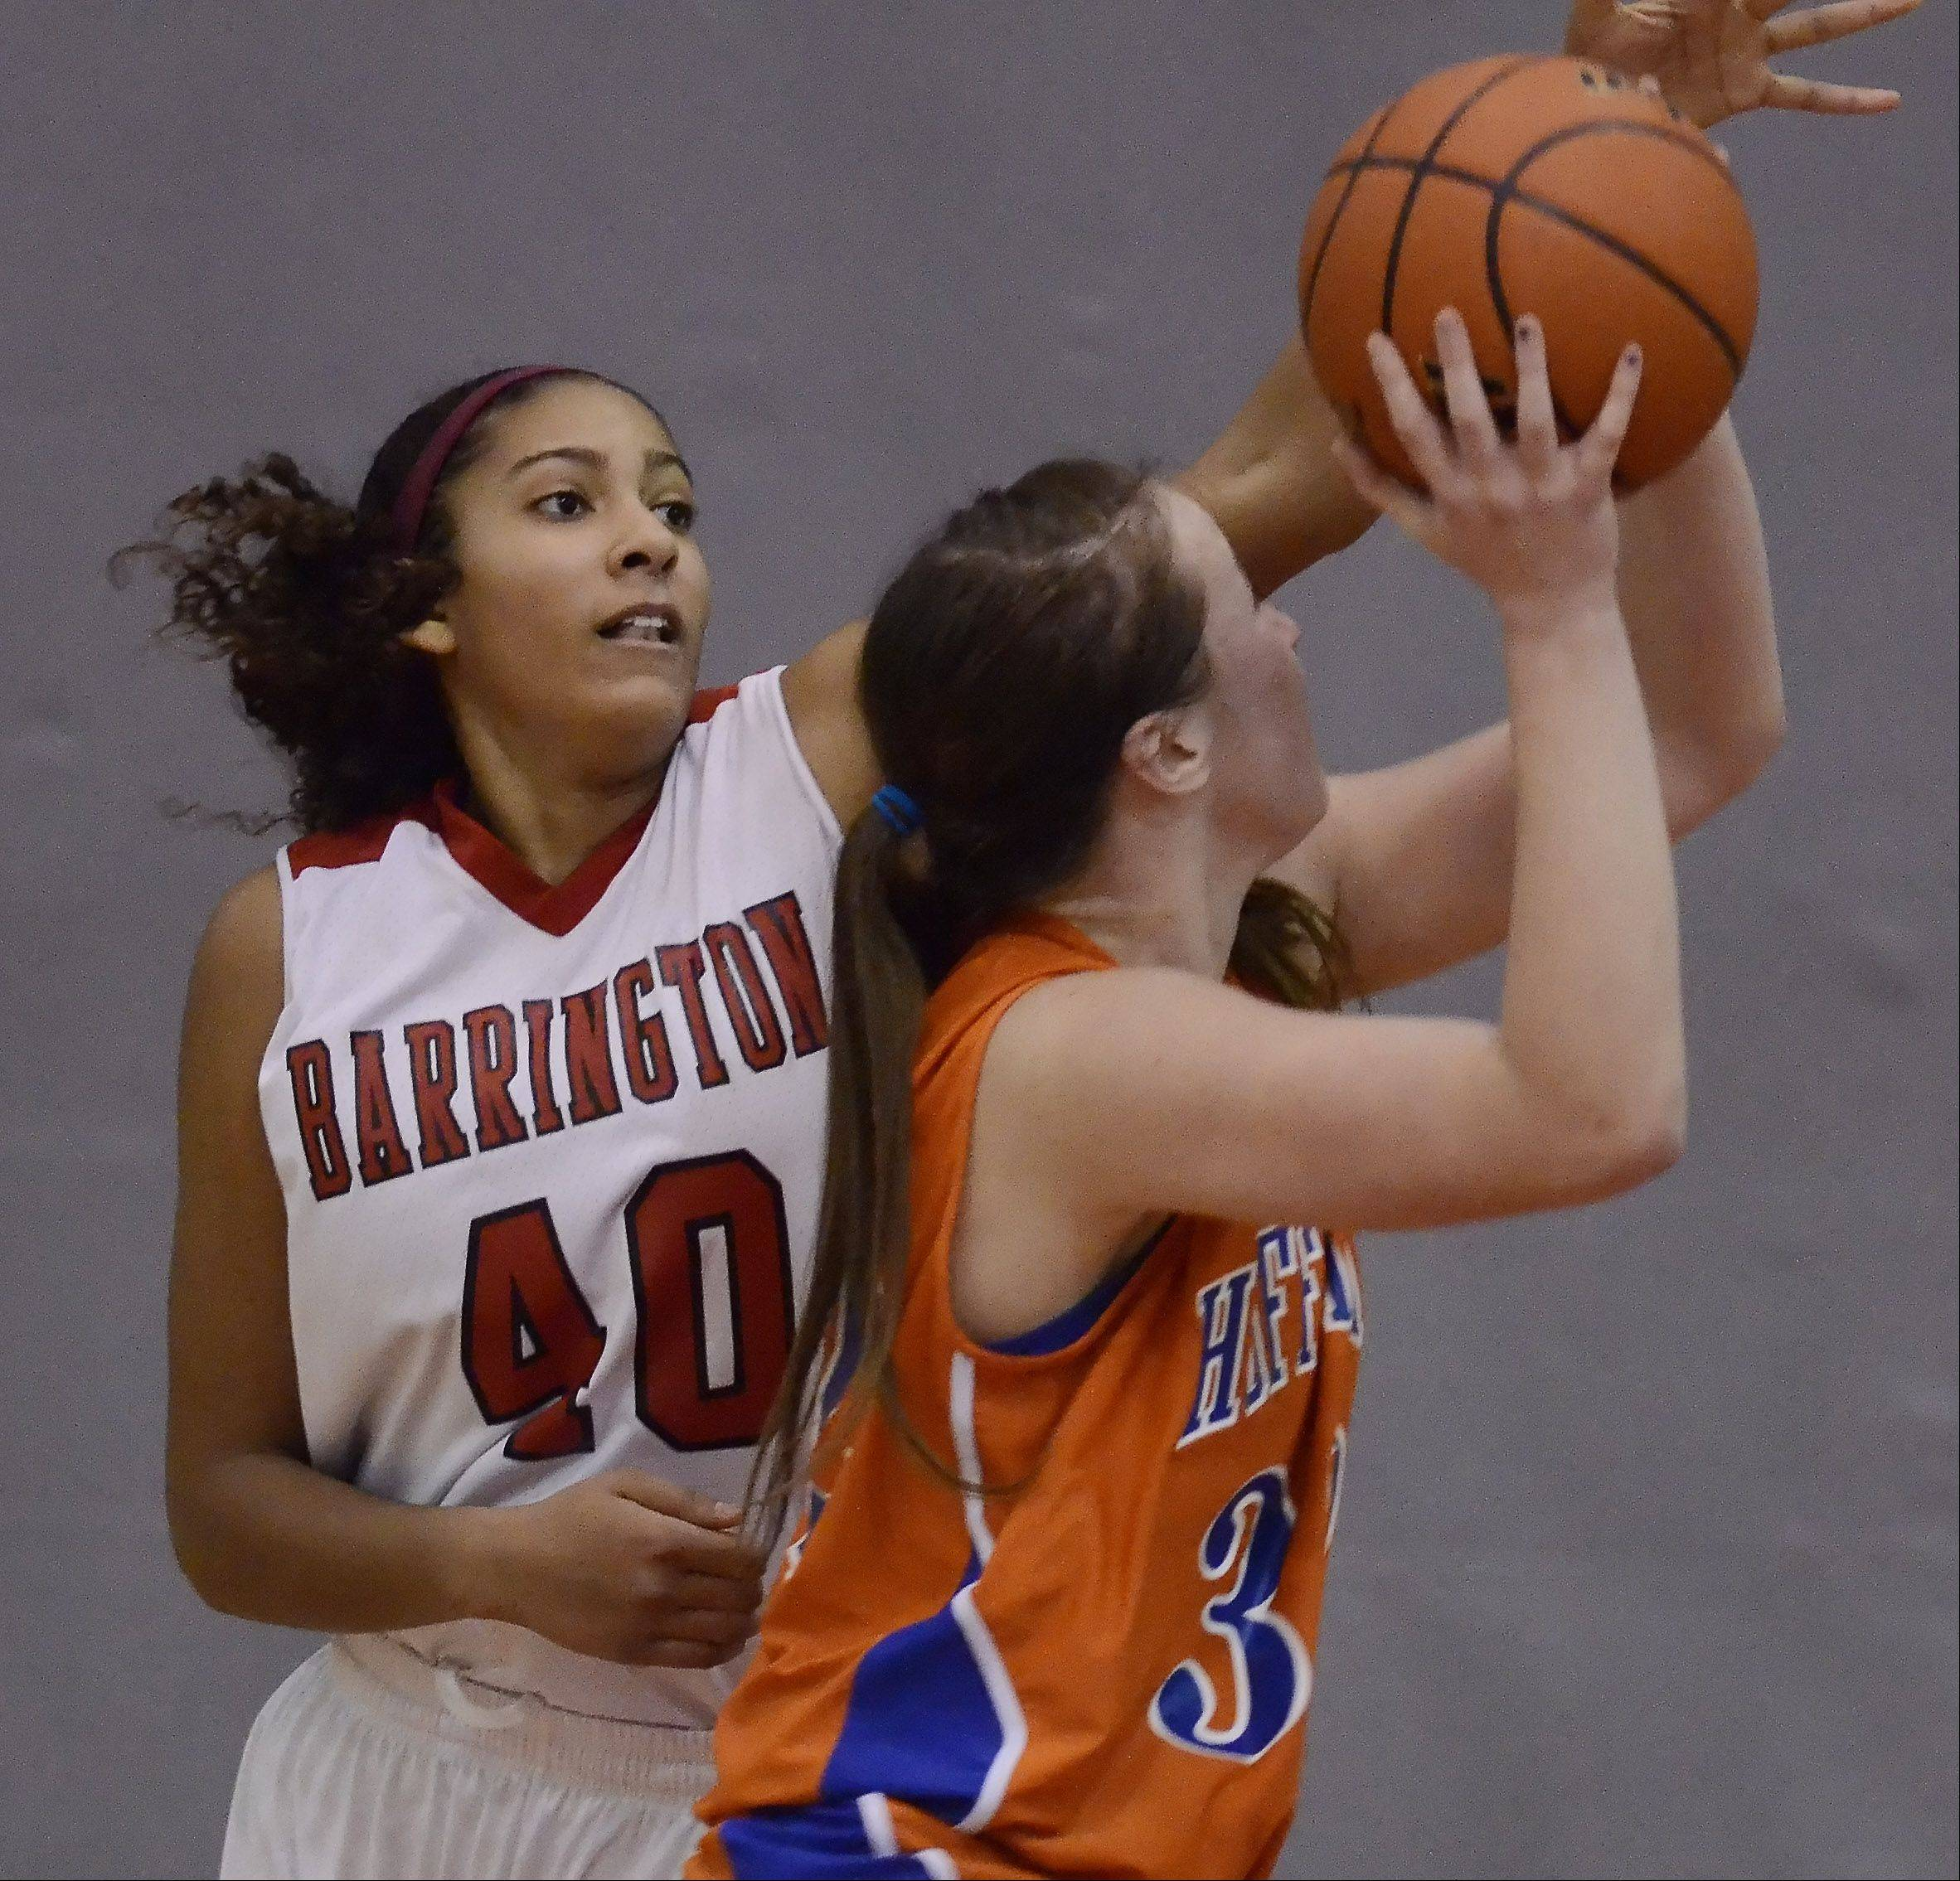 Barrington's Bryana Hopkins, left, blocks the shot of Hoffman Estates' Becca Stoczynski during Wednesday's game.